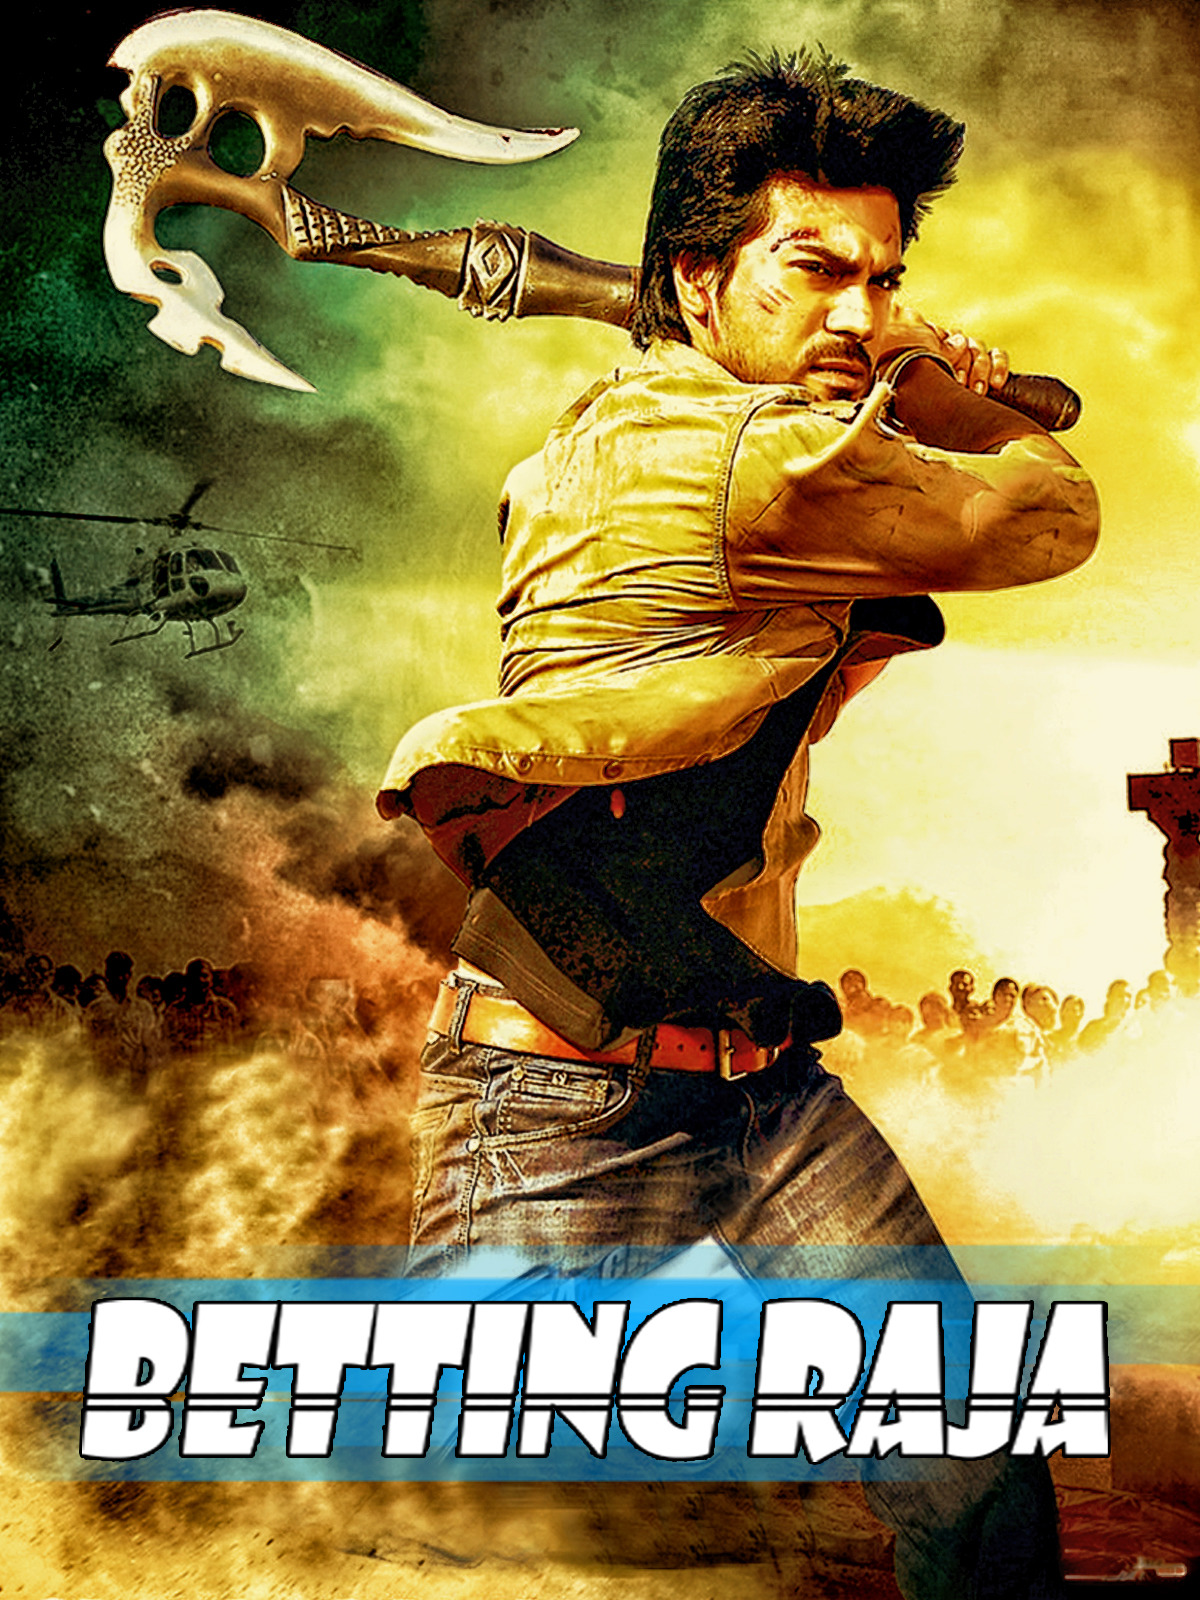 betting raja full movie with english subtitles